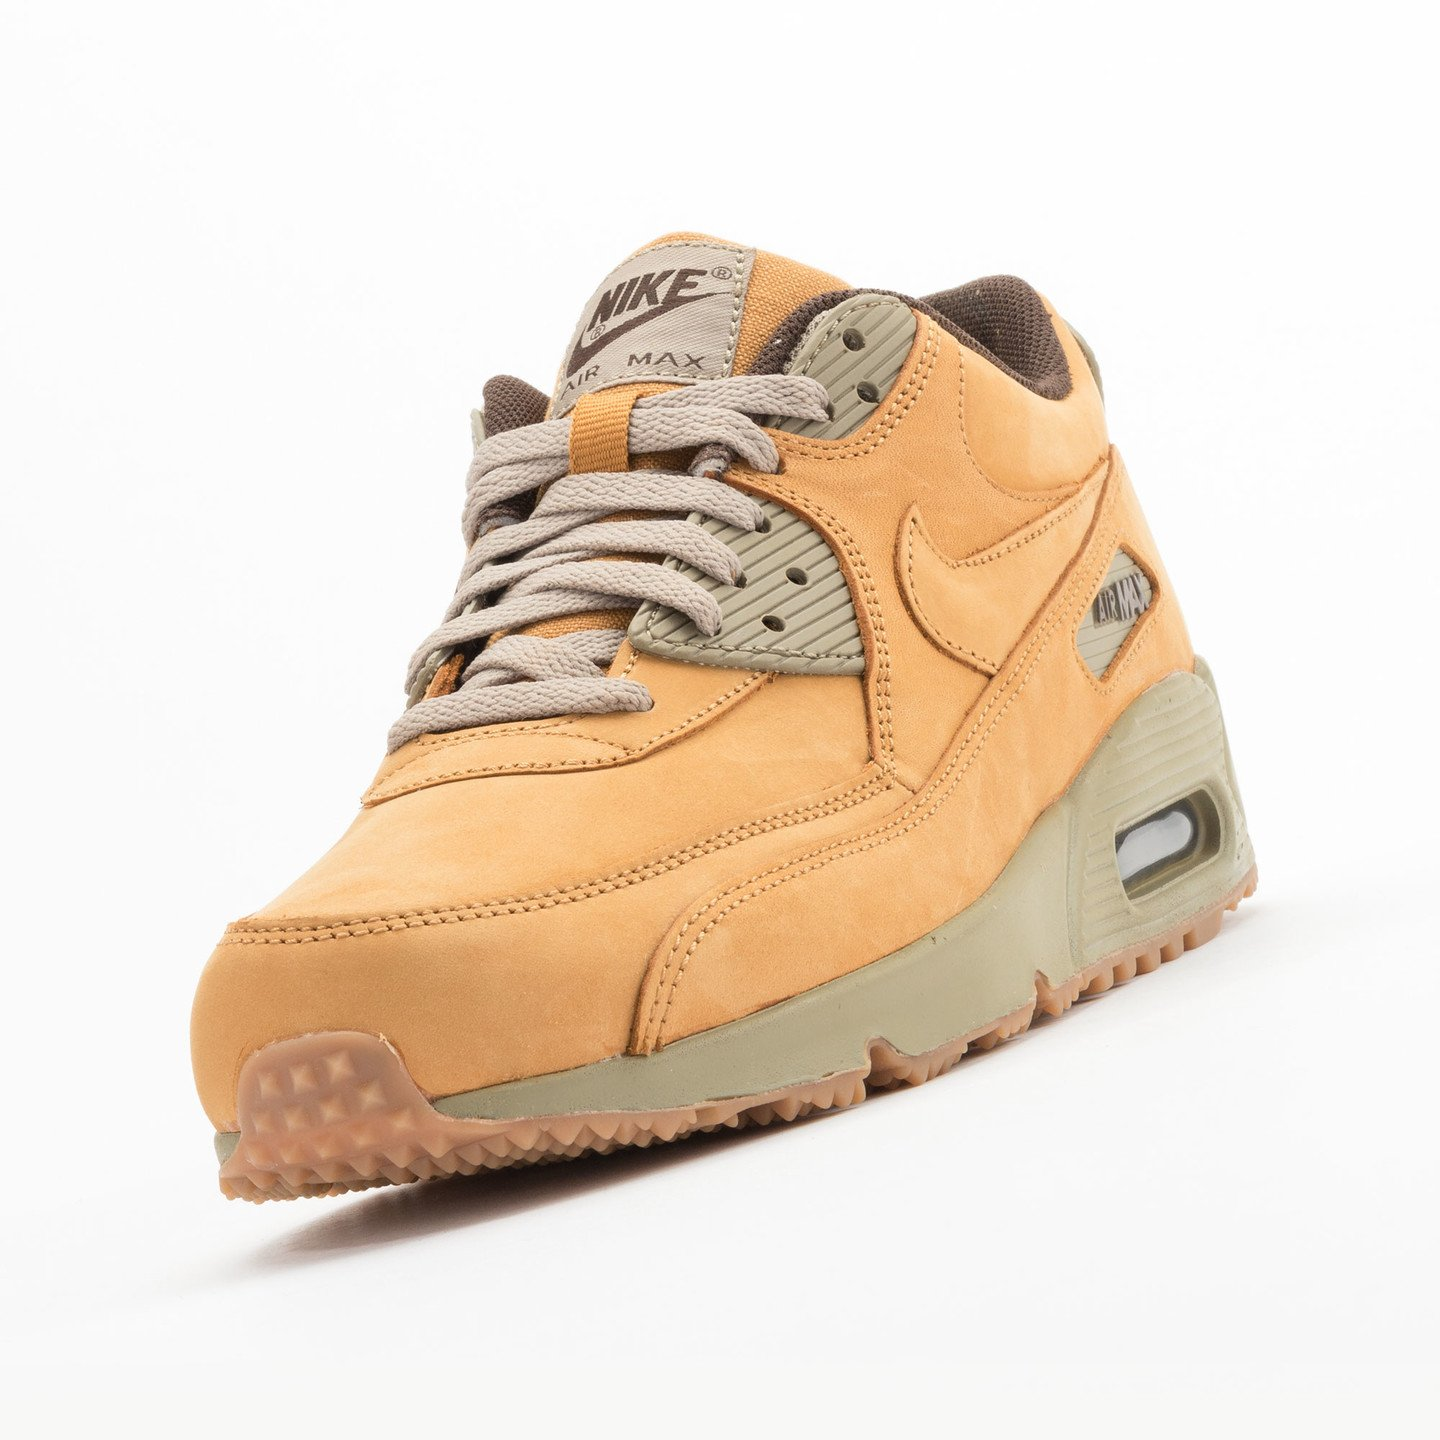 Nike Air Max 90 Winter Premium Bronze / Baroque Brown 683282-700-42.5